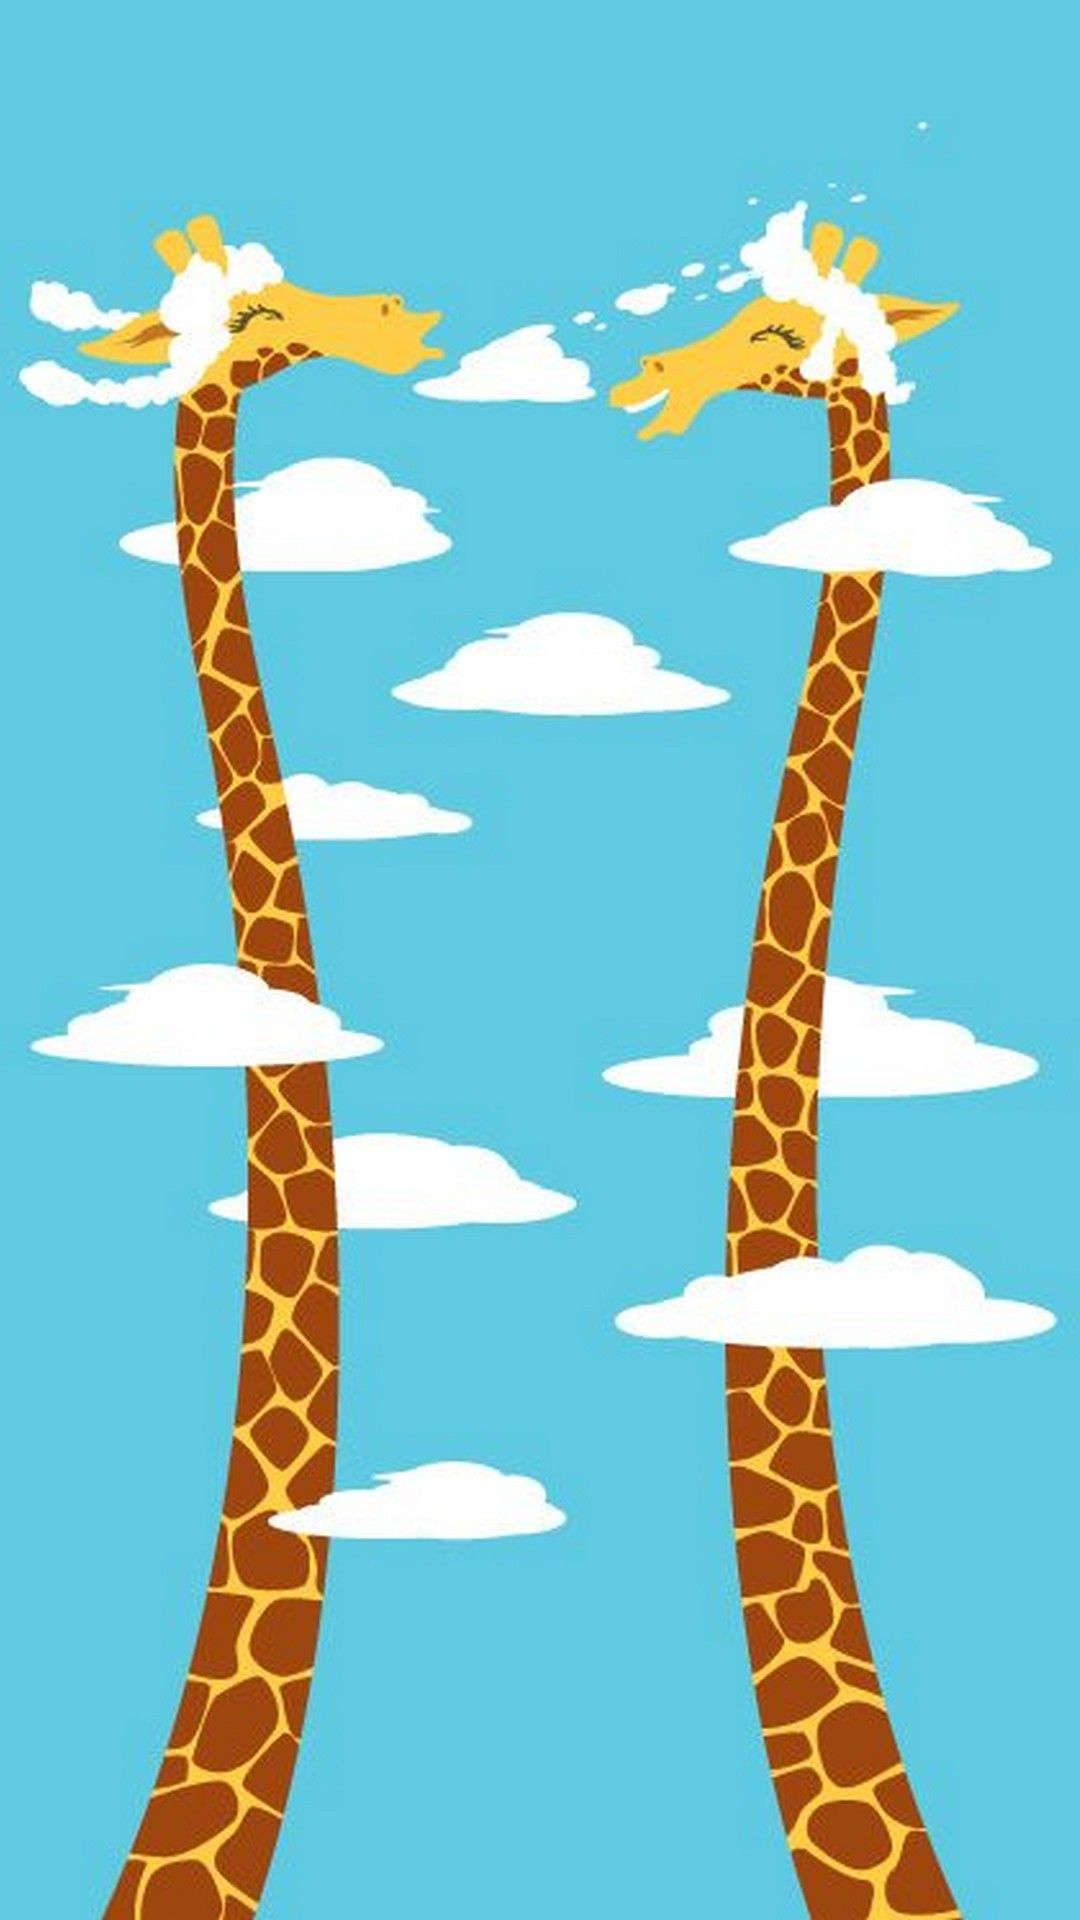 Cute Giraffe HD Wallpaper